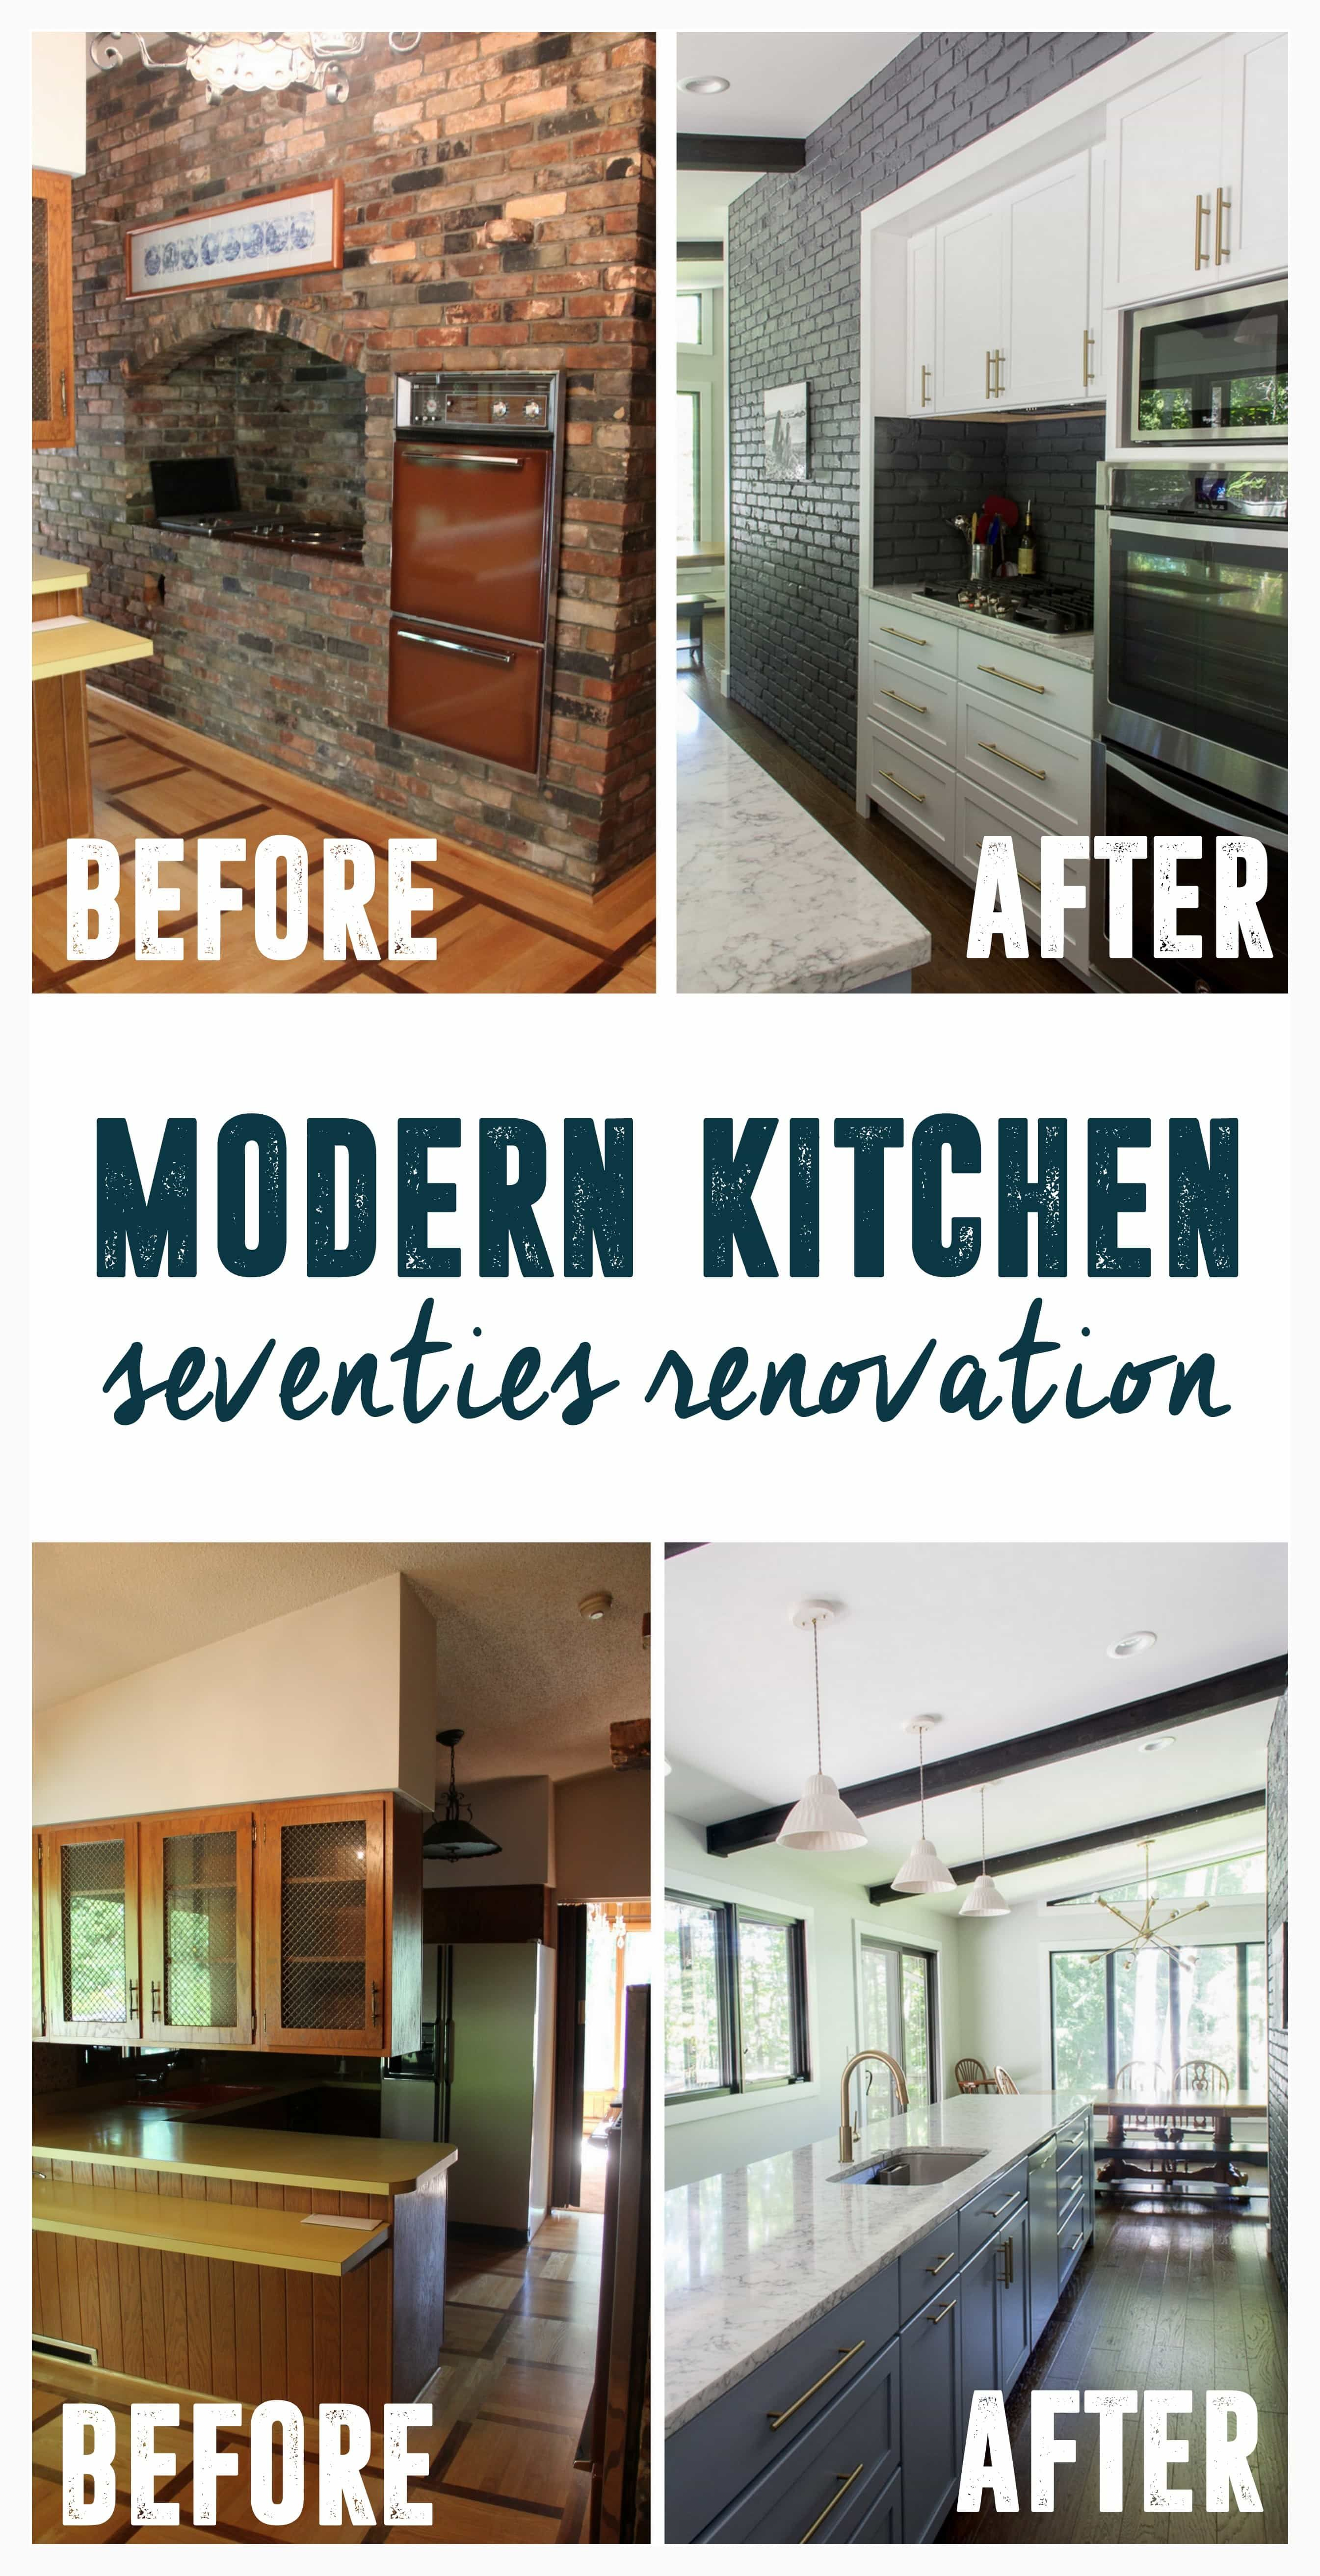 Retro Renovation Modern Kitchen